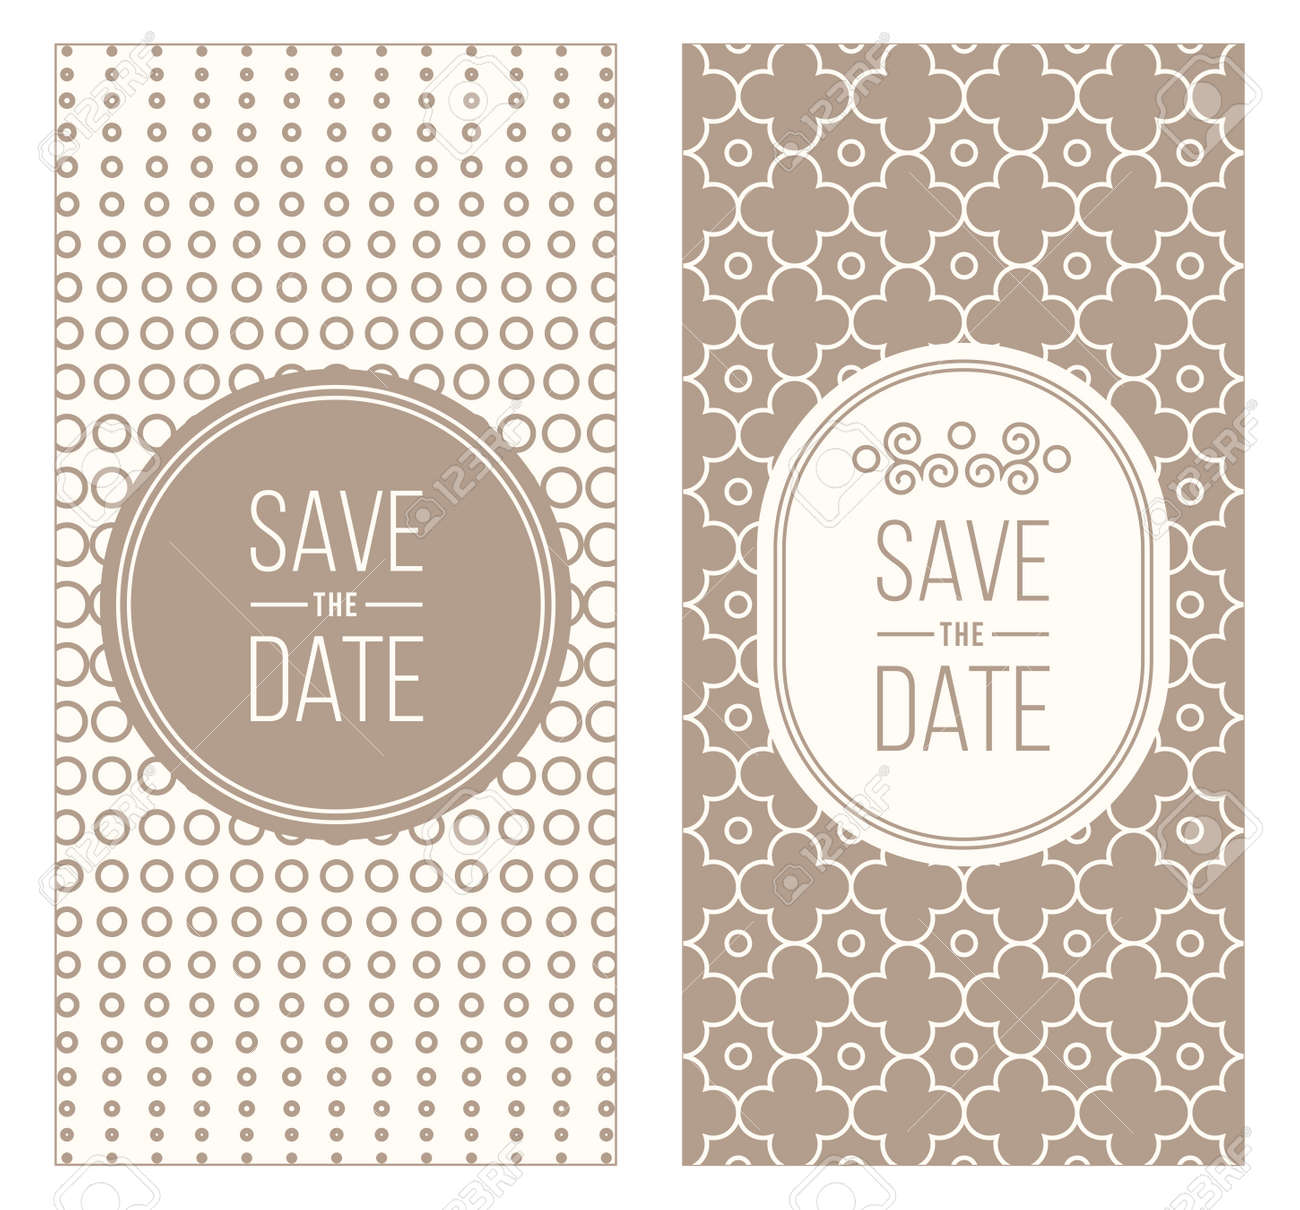 Two Retro Wedding Invitation Templates Abstract Geometric